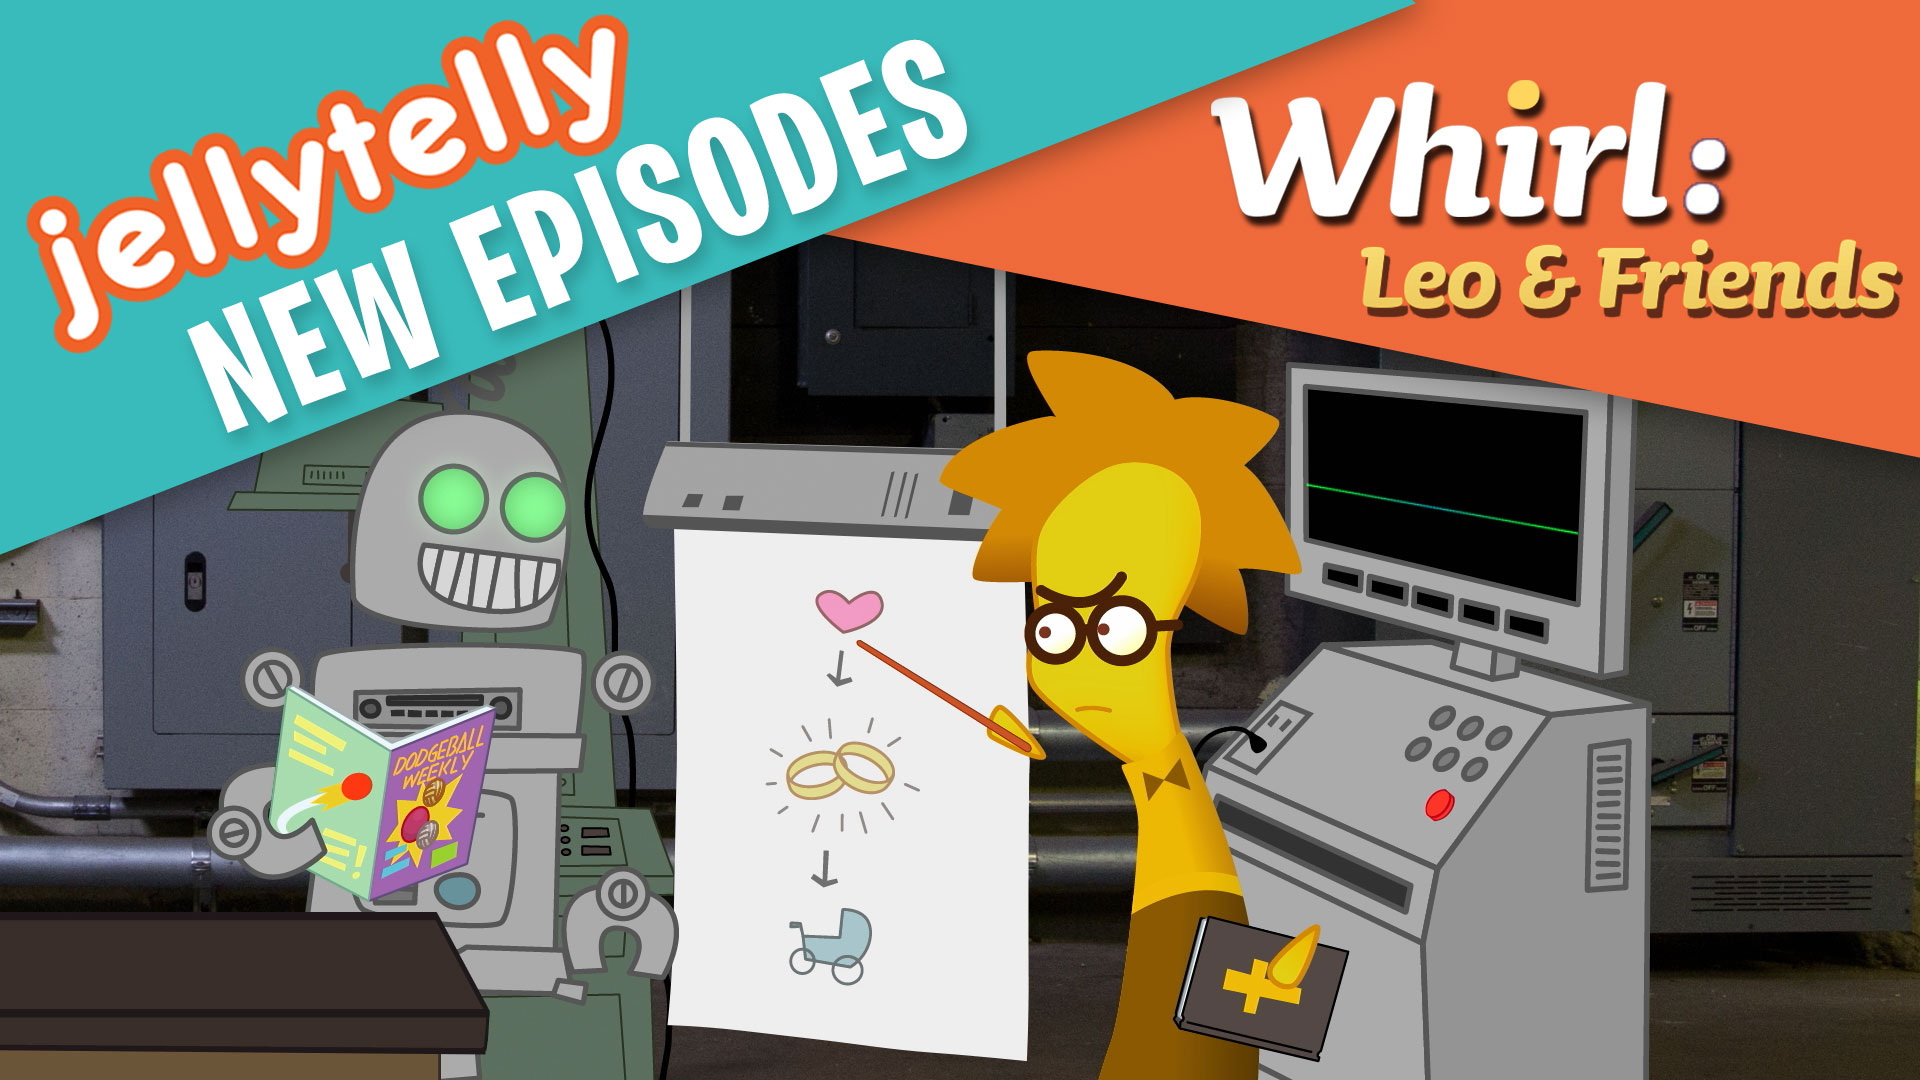 Whirl leo v1 ep14 featured preview image